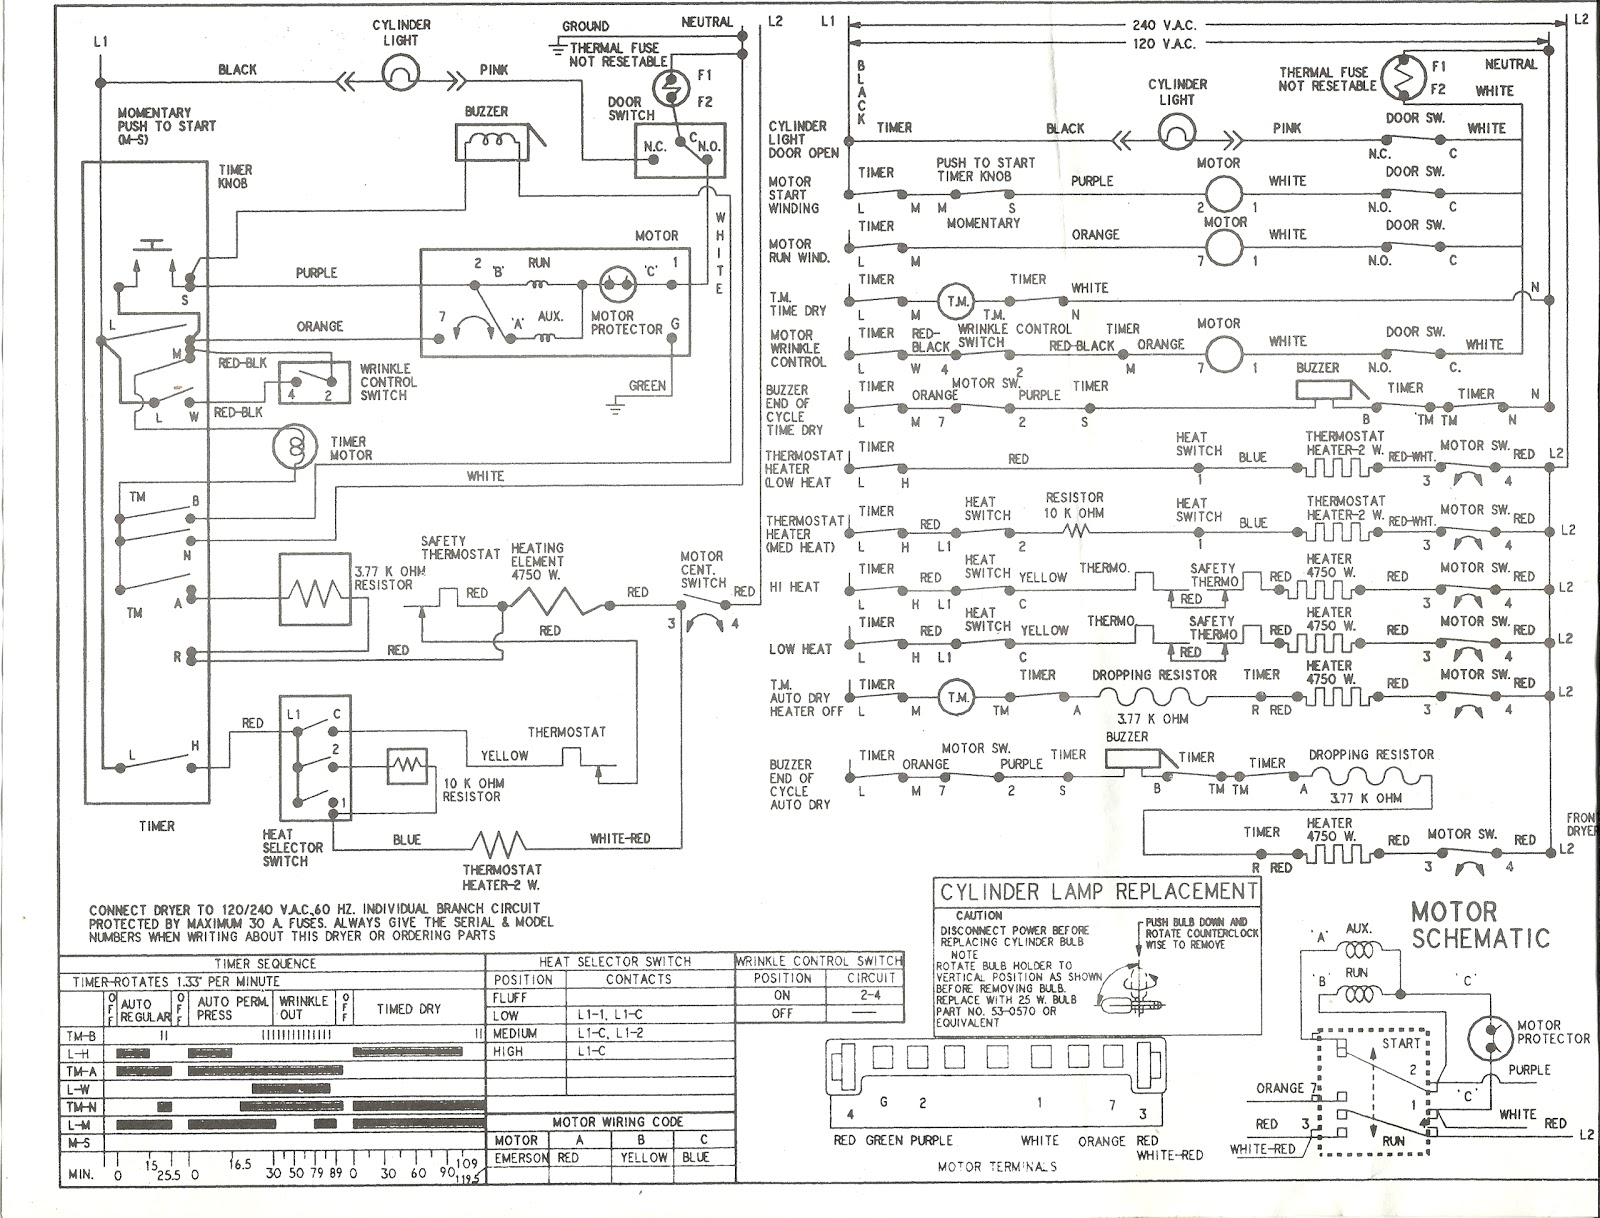 electric dryer wiring diagram. electric. wiring diagram instructions, Wiring diagram